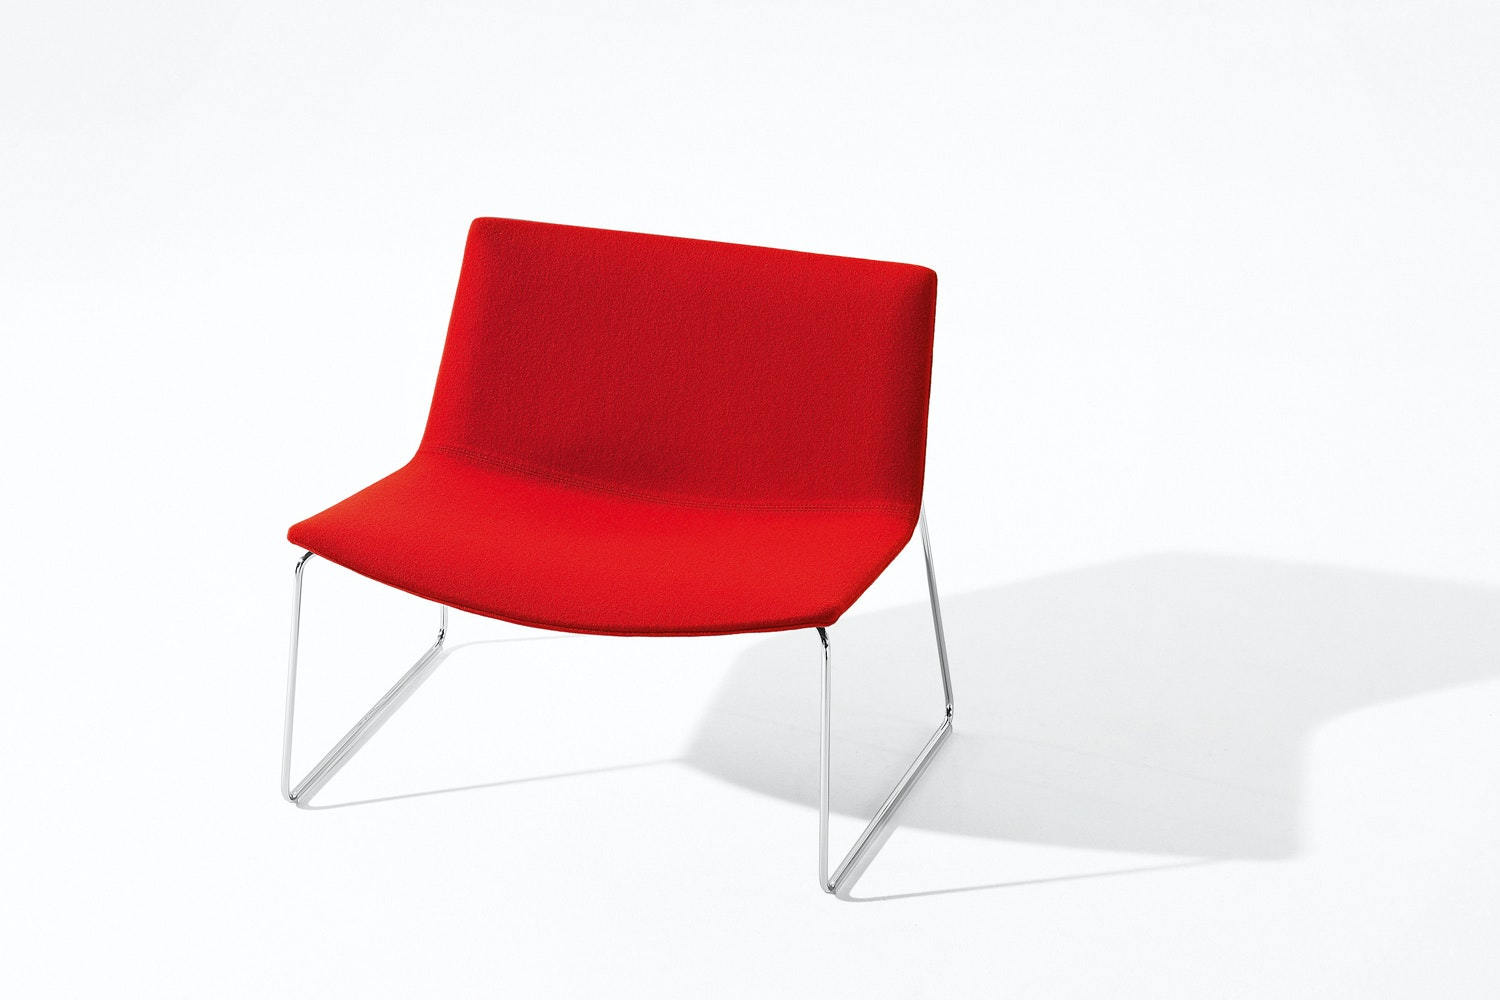 Catifa 80 Armchair by Lievore Altherr Molina for Arper